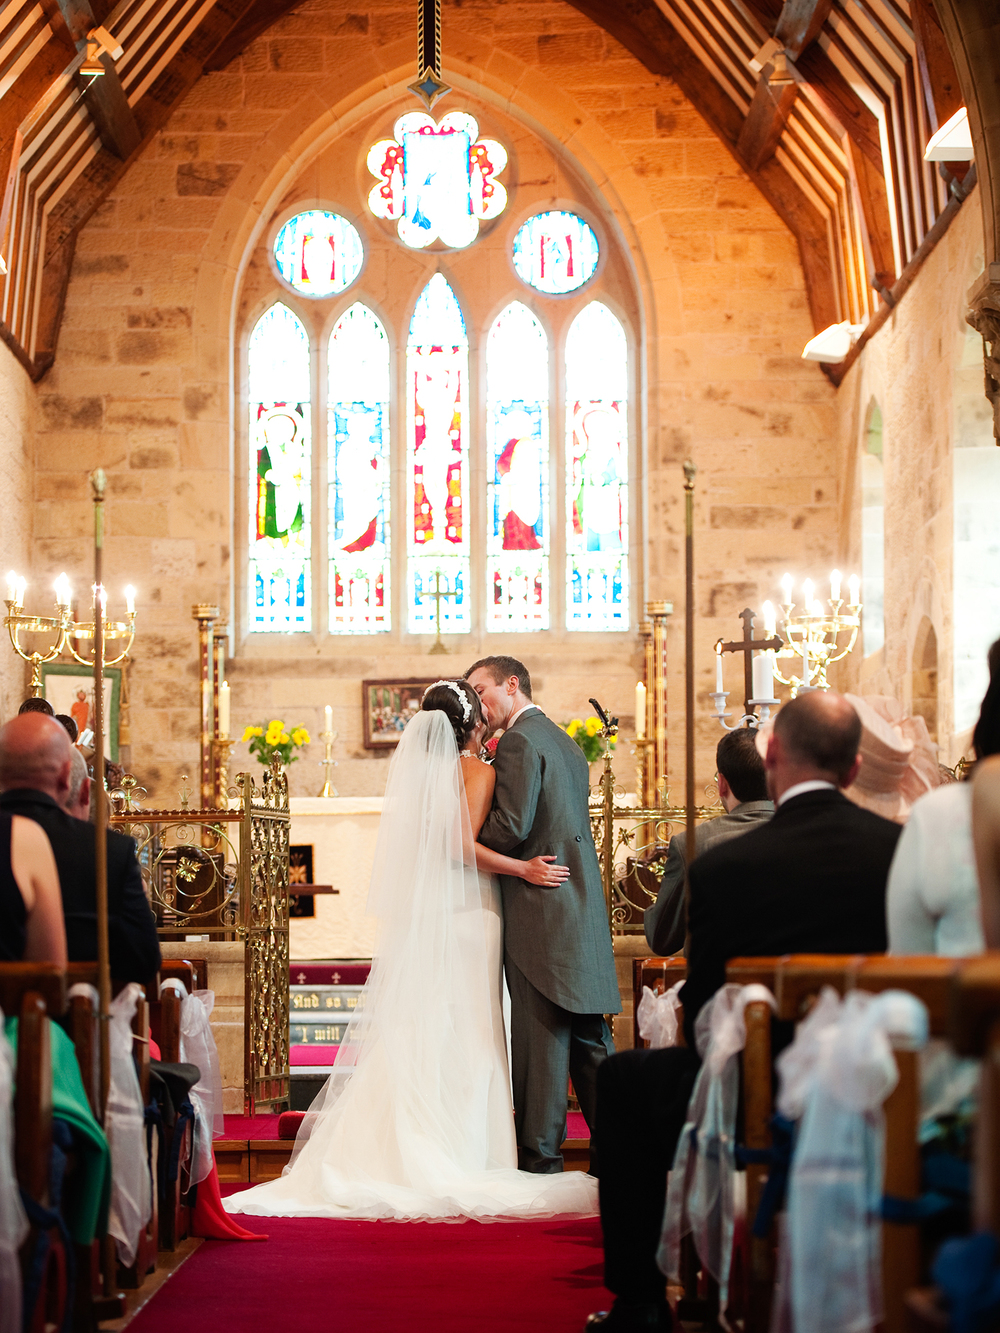 rookery-hall-wedding-weekday-wedding-photos-pink-wedding-details-cheshire-wedding (16)